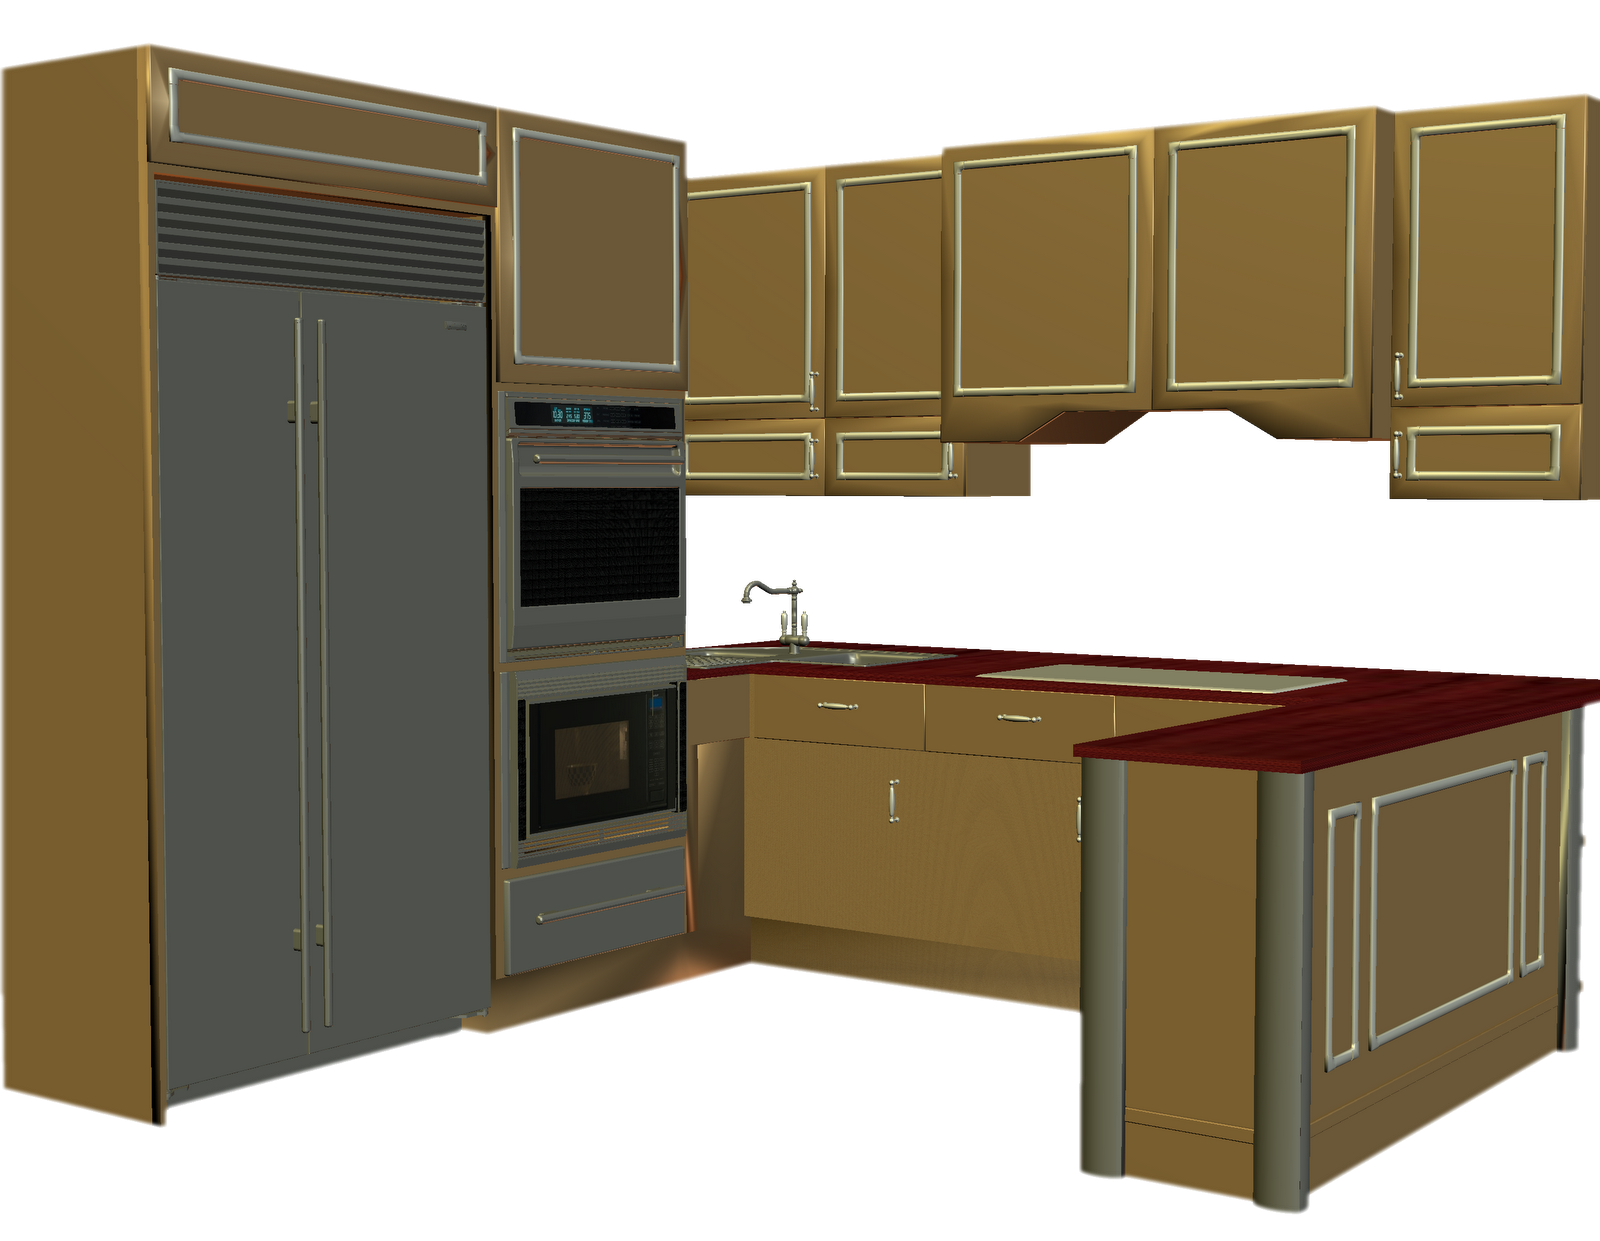 Here Are Some Pretty Cool Kitchen And Kitchen Object Clipart Enjoy